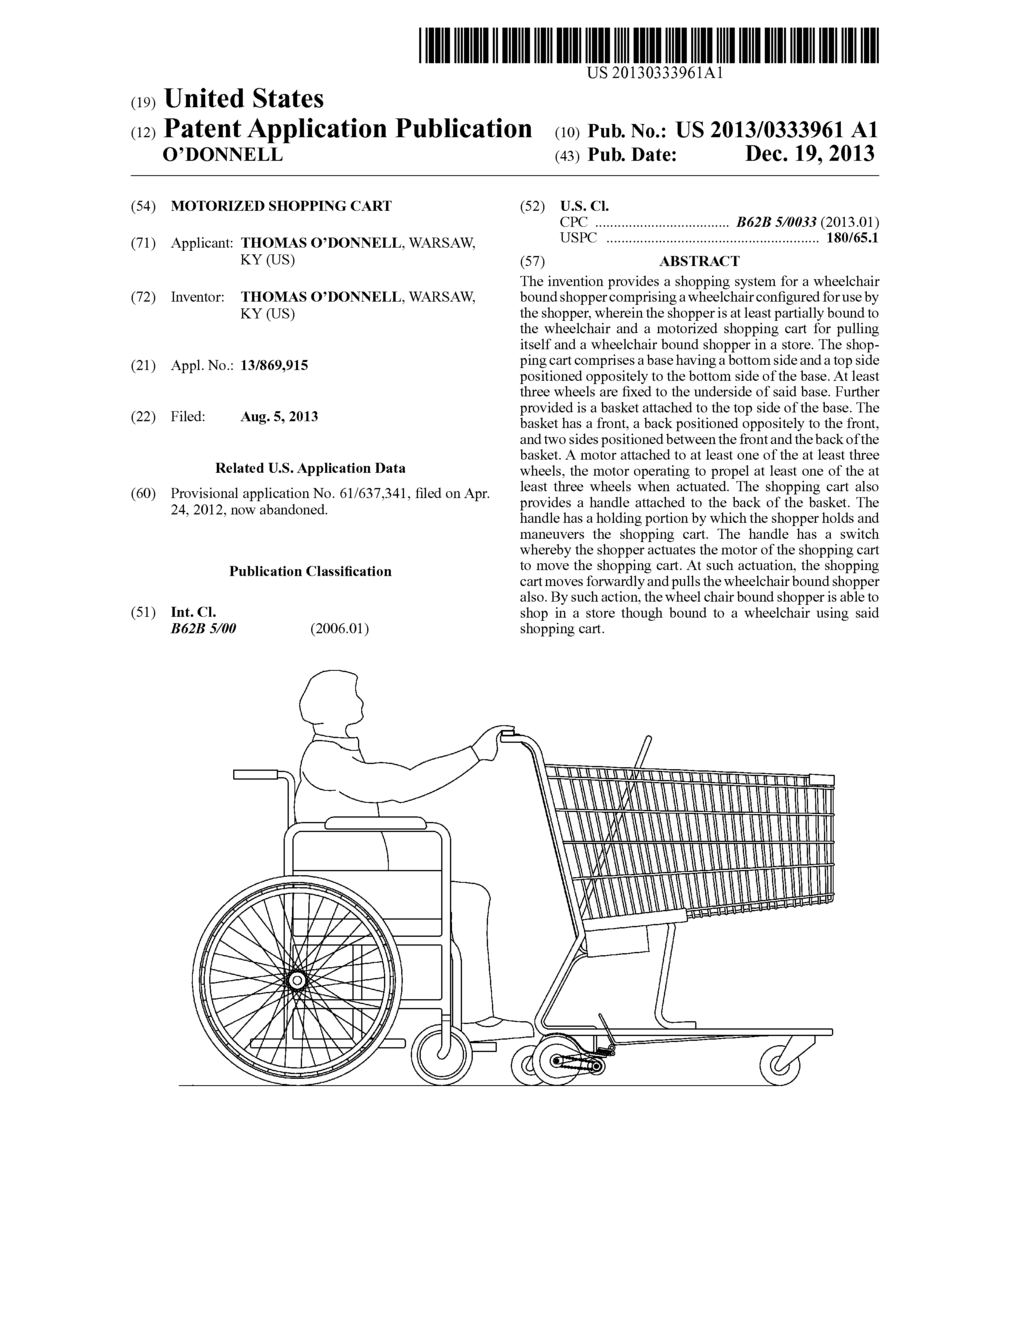 Swell Motorized Shopping Cart Diagram Schematic And Image 01 Wiring Digital Resources Sapebecompassionincorg